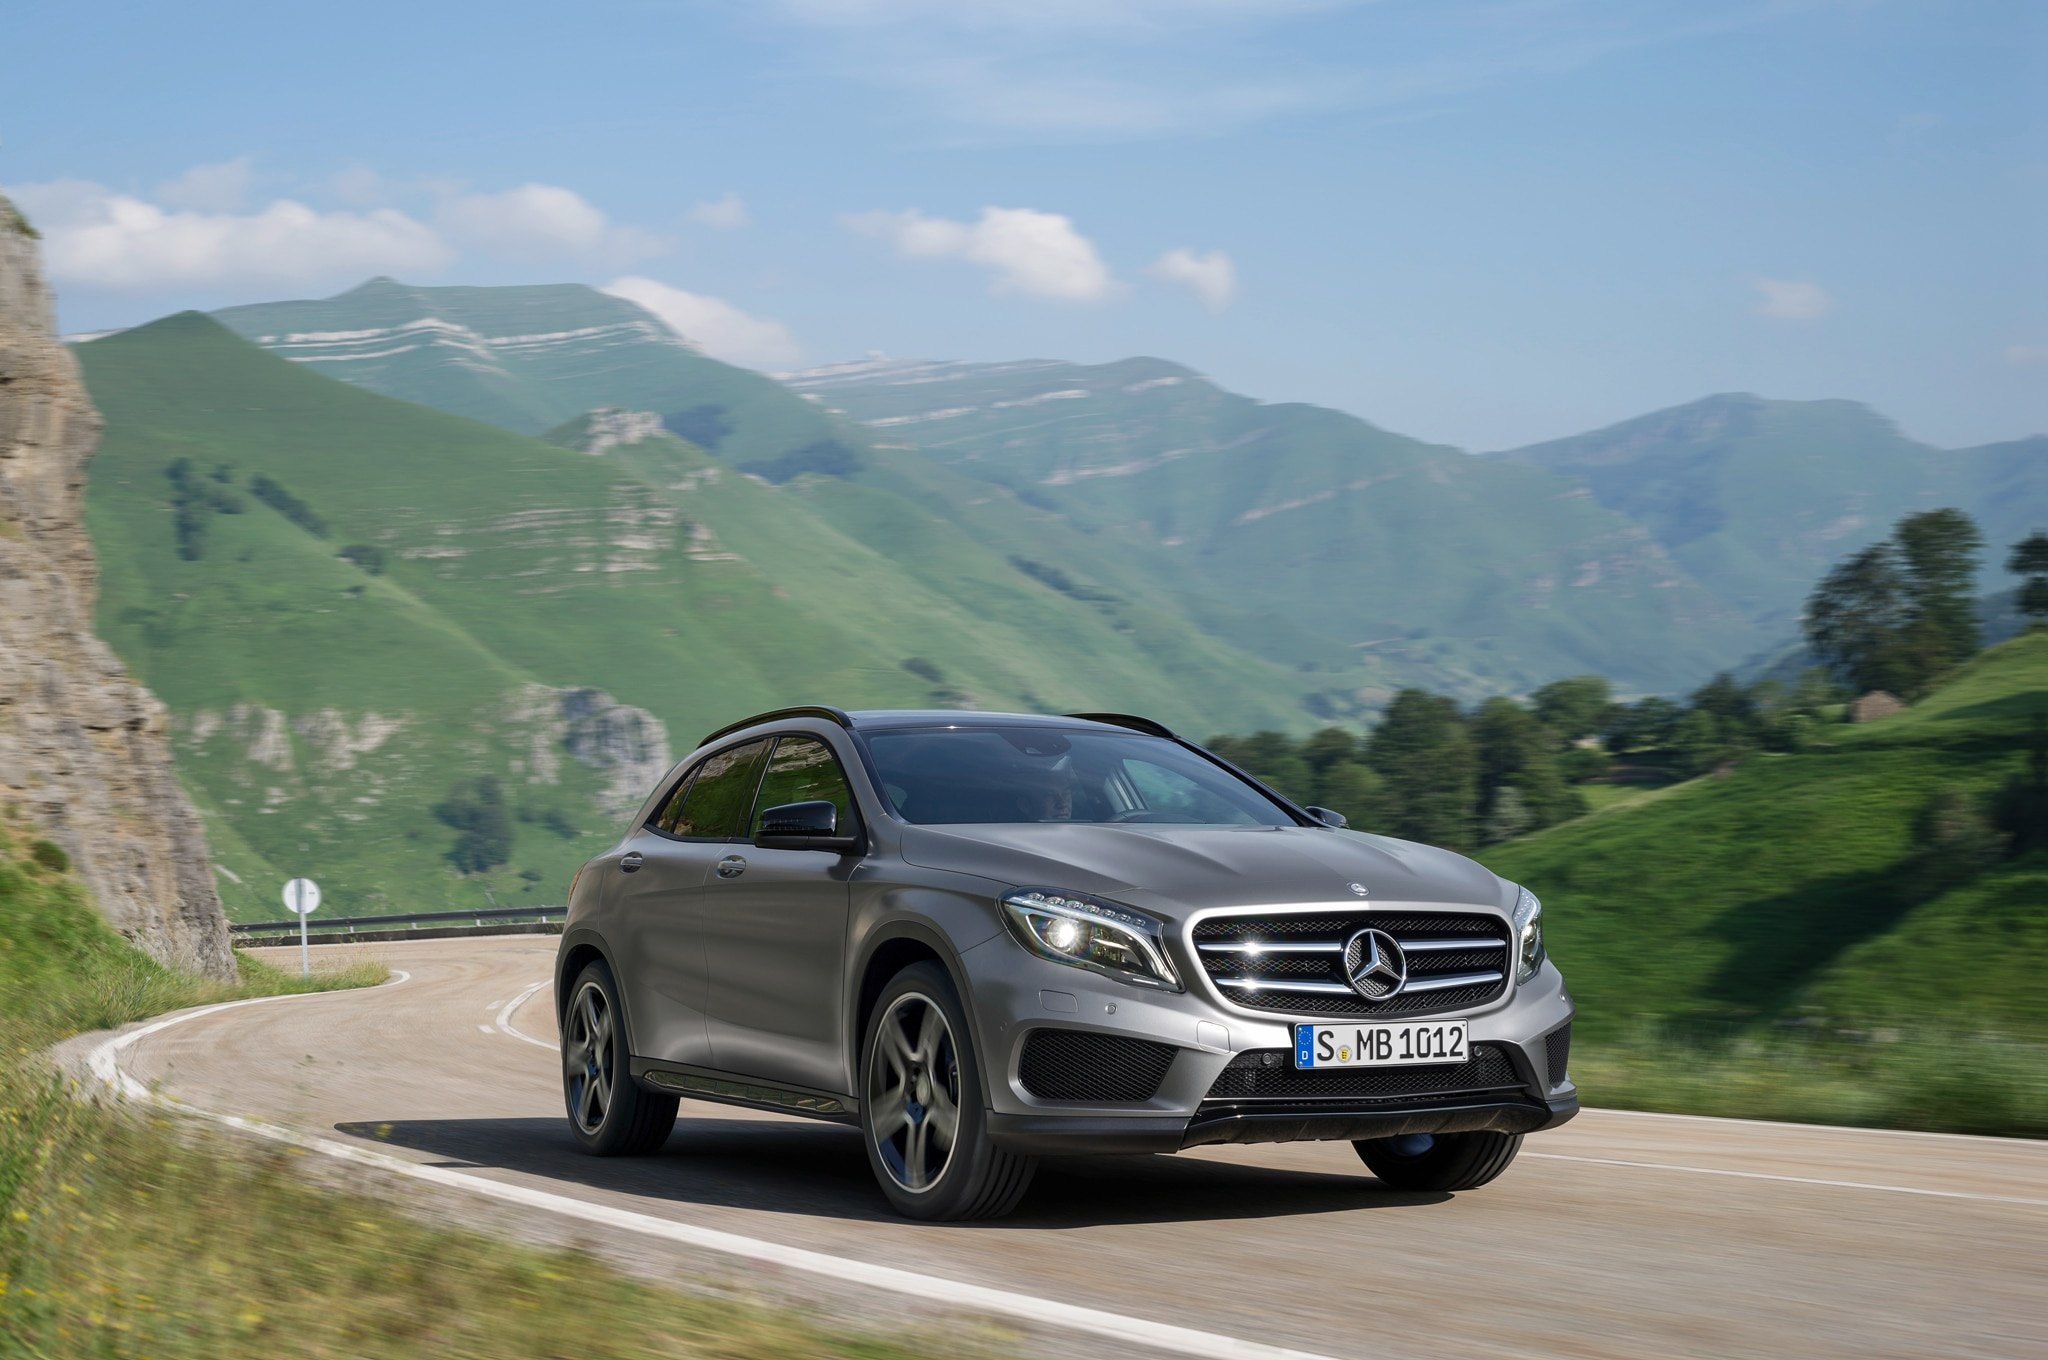 2015 Mercedes Benz GLA250 Front Three Quarters 021